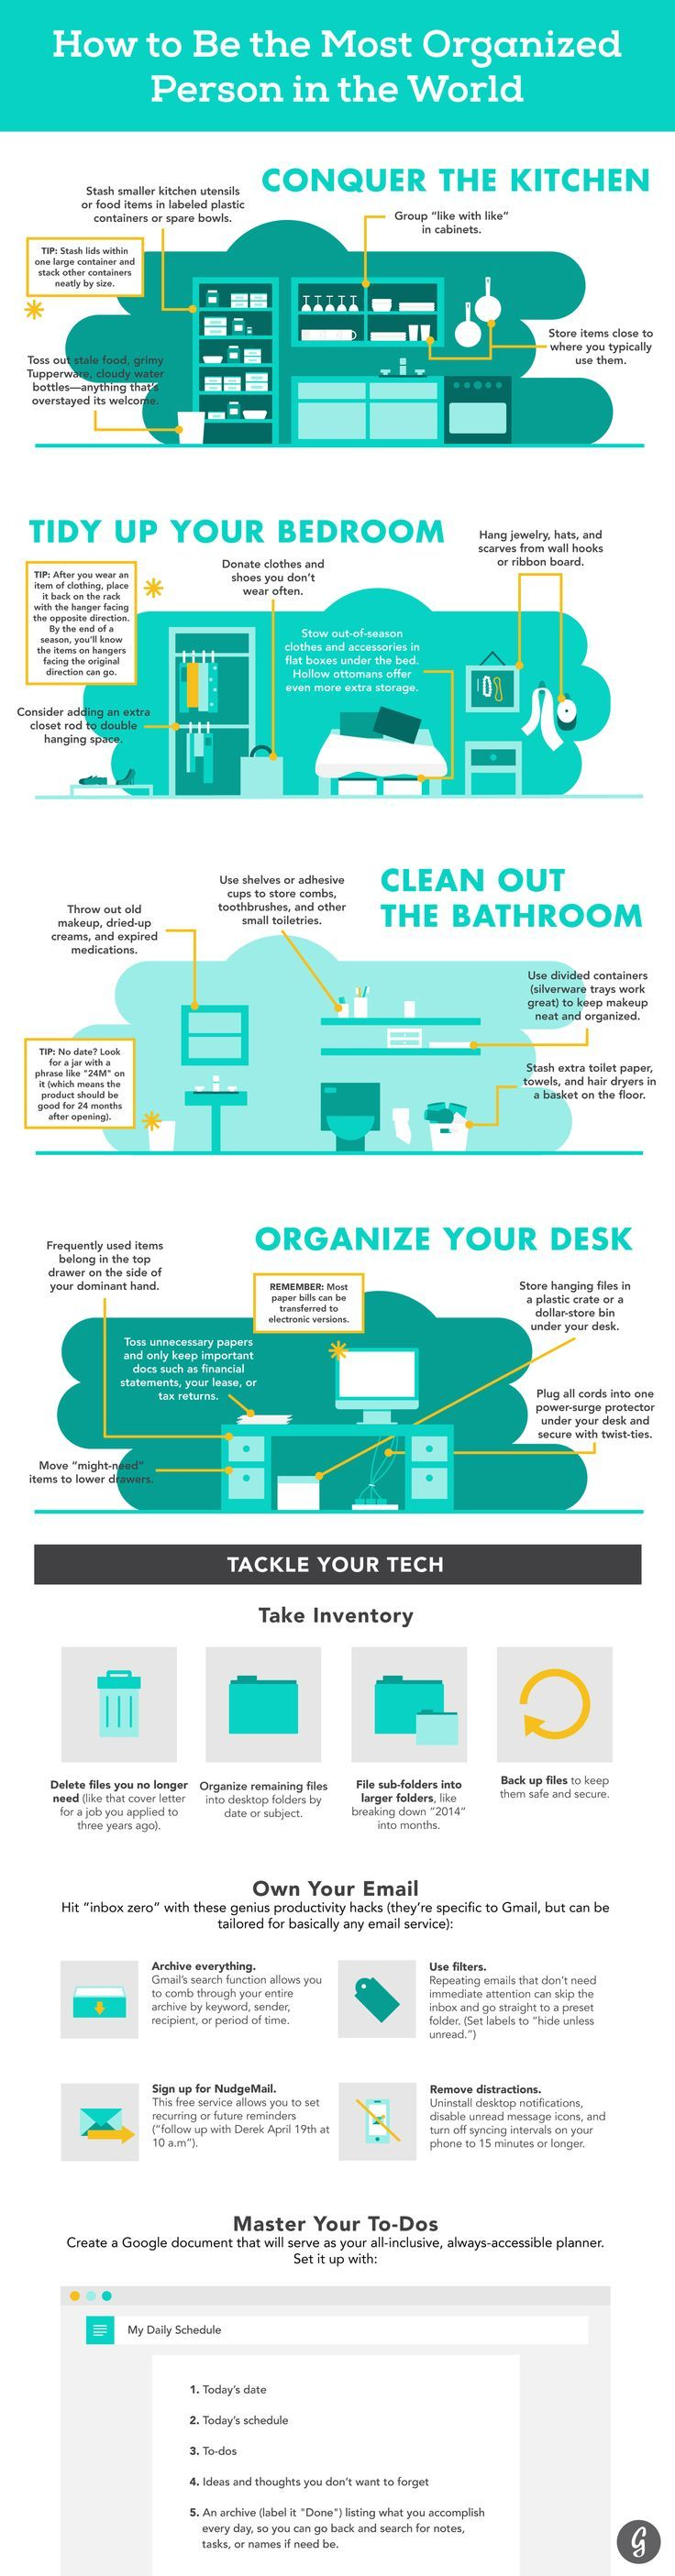 78 Best Images About Organization Techniques For Adhd On